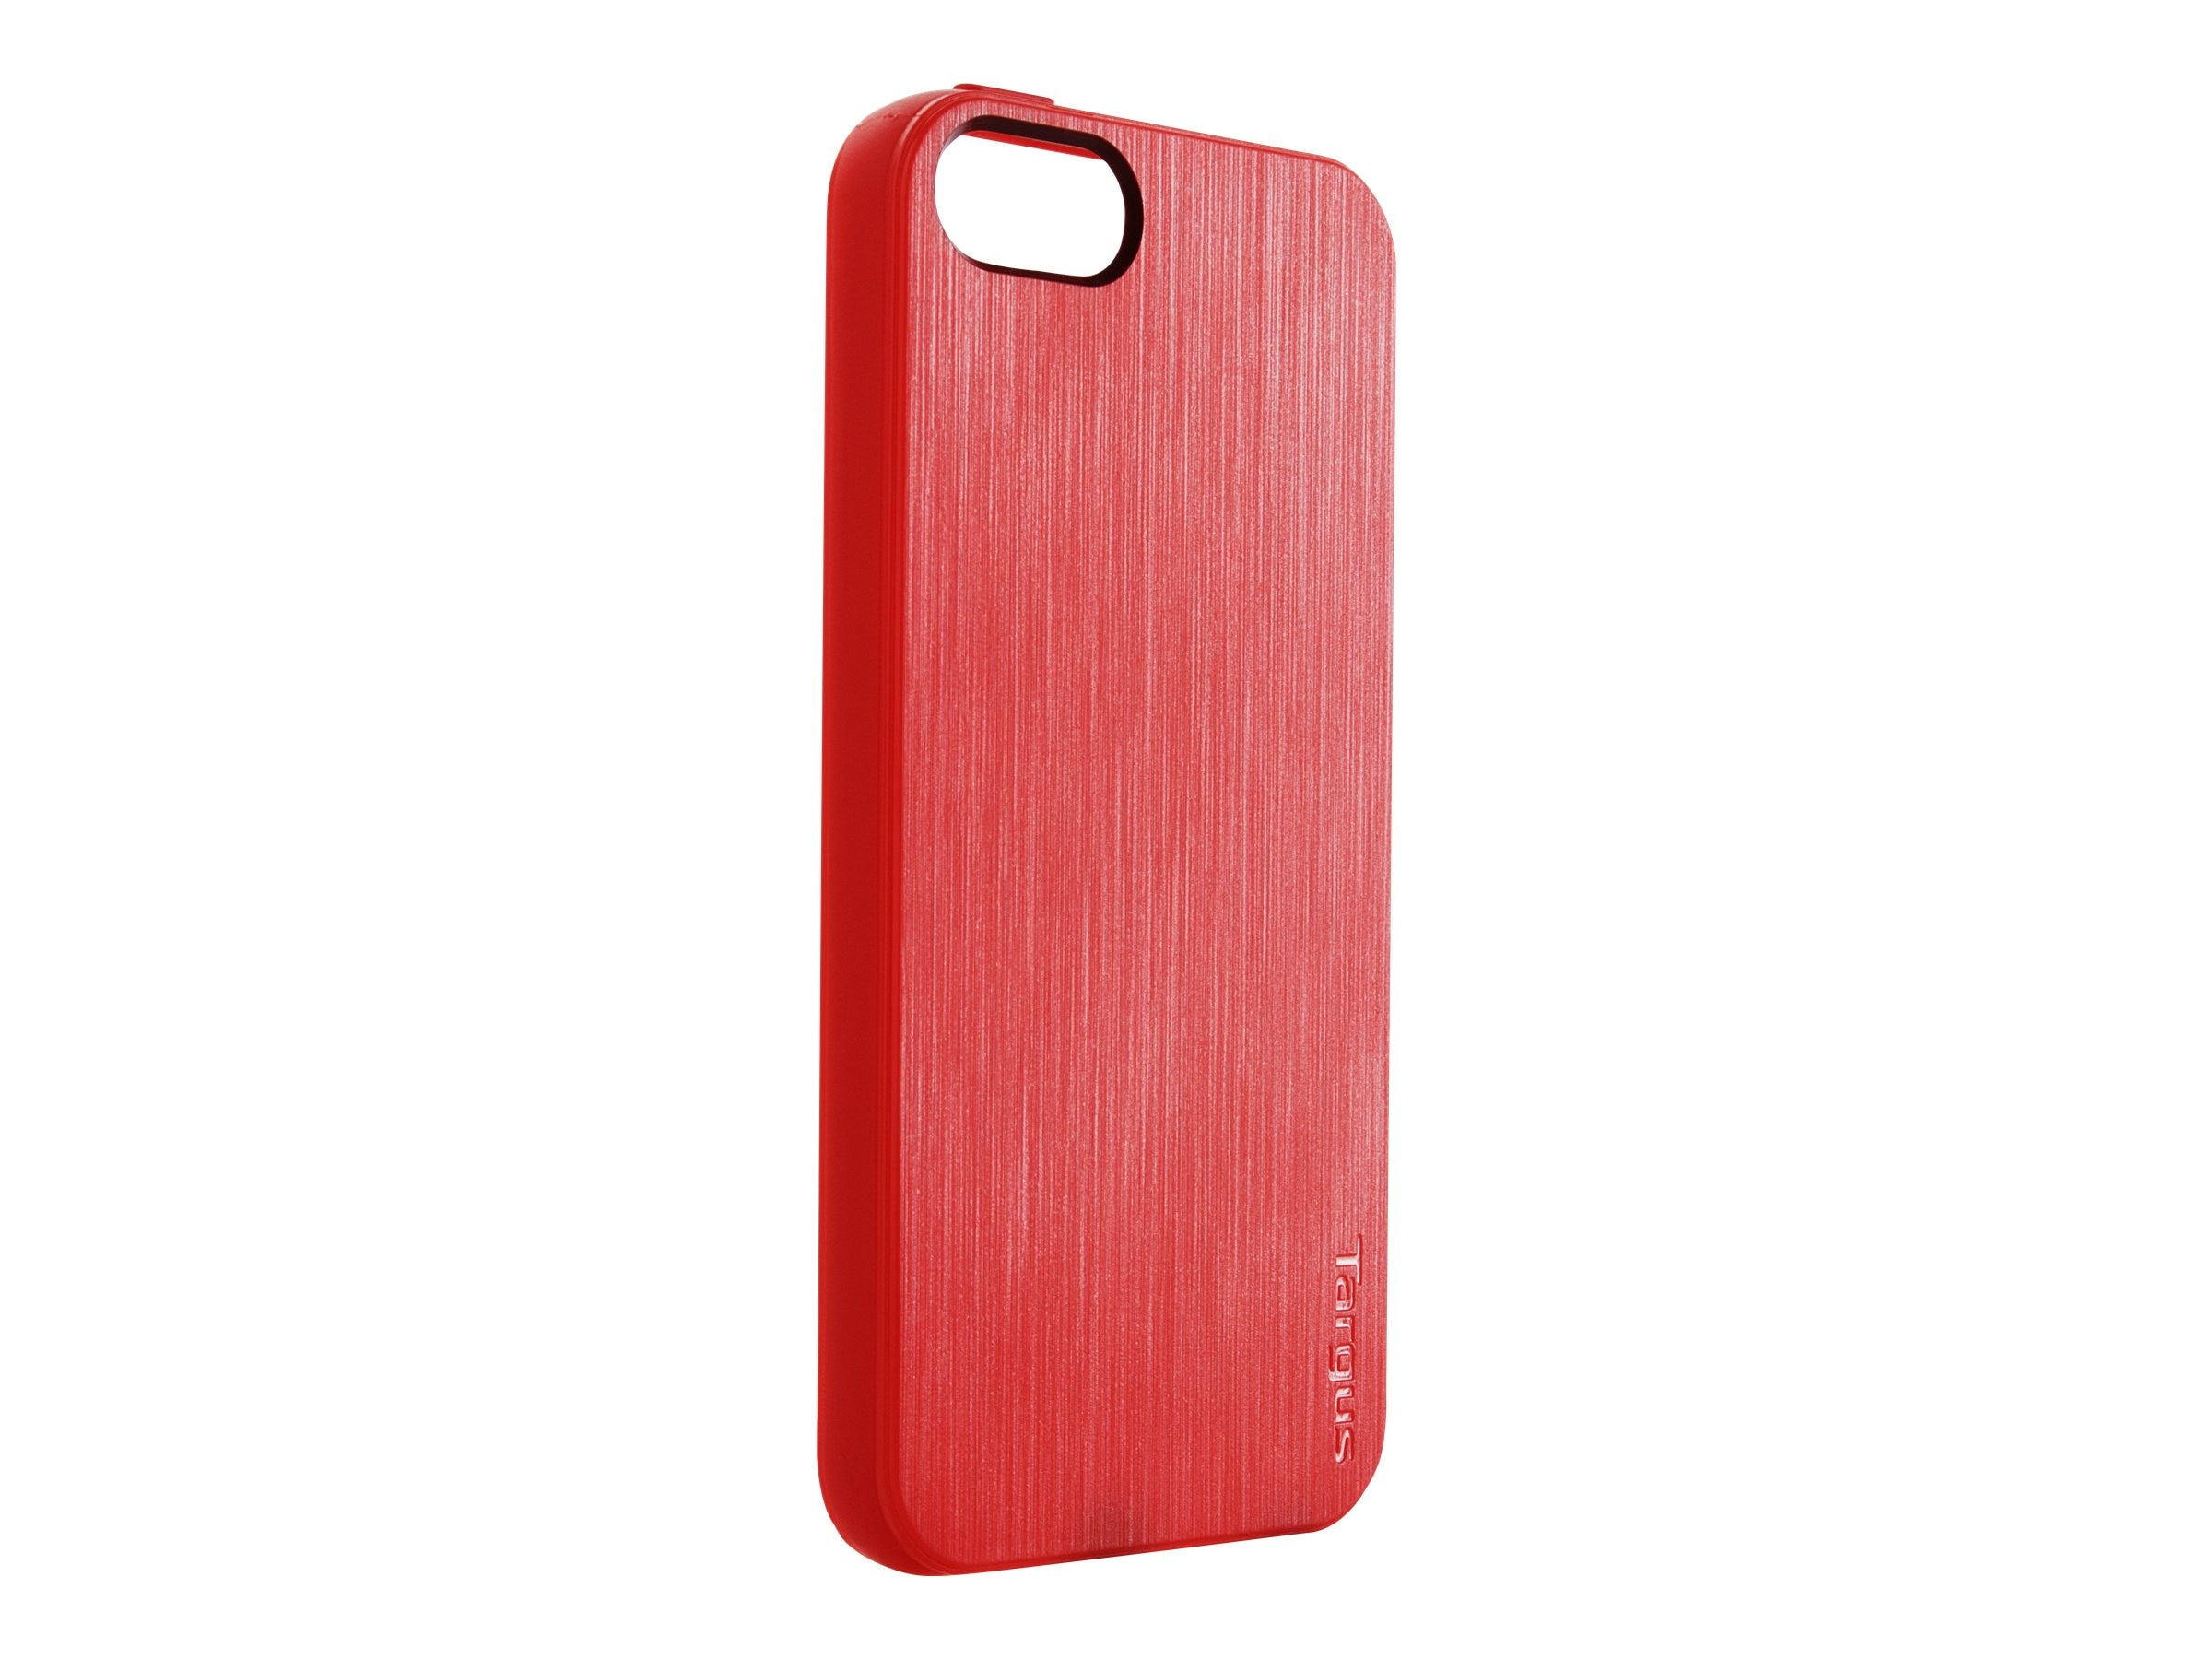 Targus Slim-Fit Back Cover for iPhone 5, Red